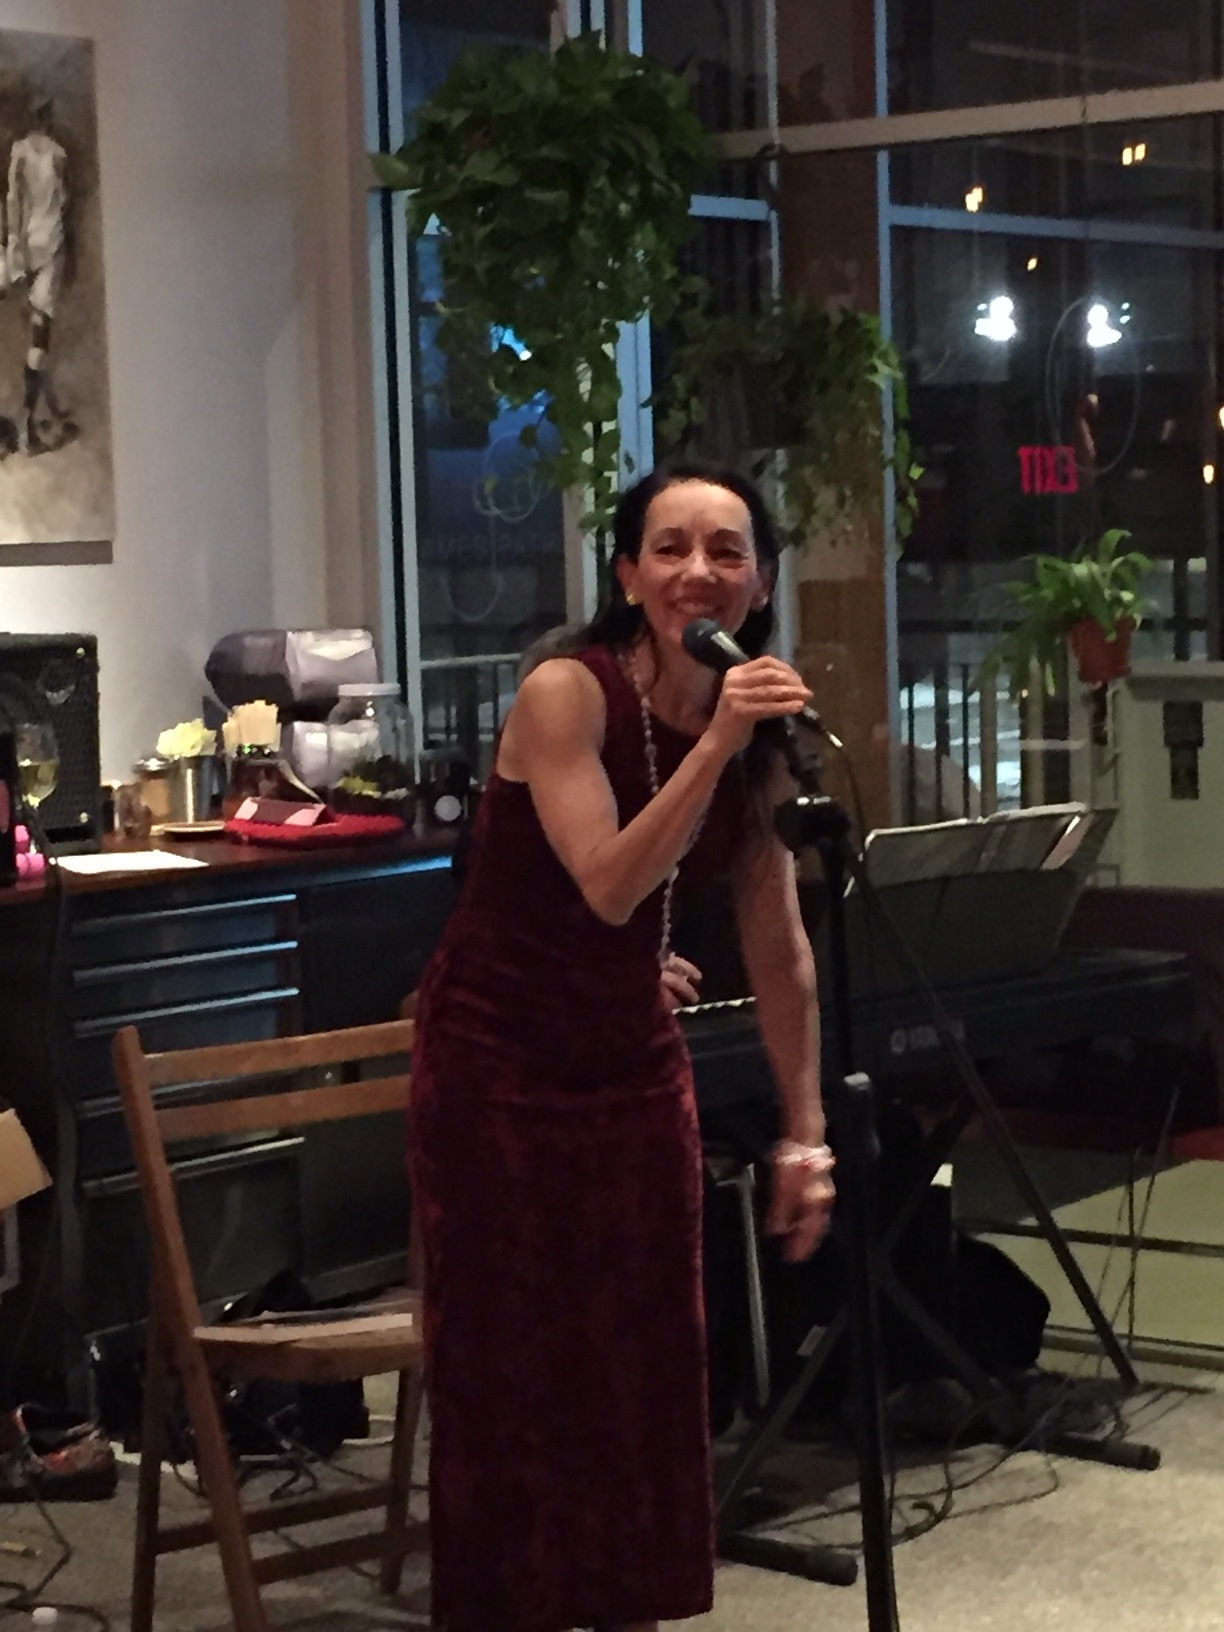 Internal Matter Restaurant and Cafe 4.25.16 - Sharon sings pop and Broadway show tunes